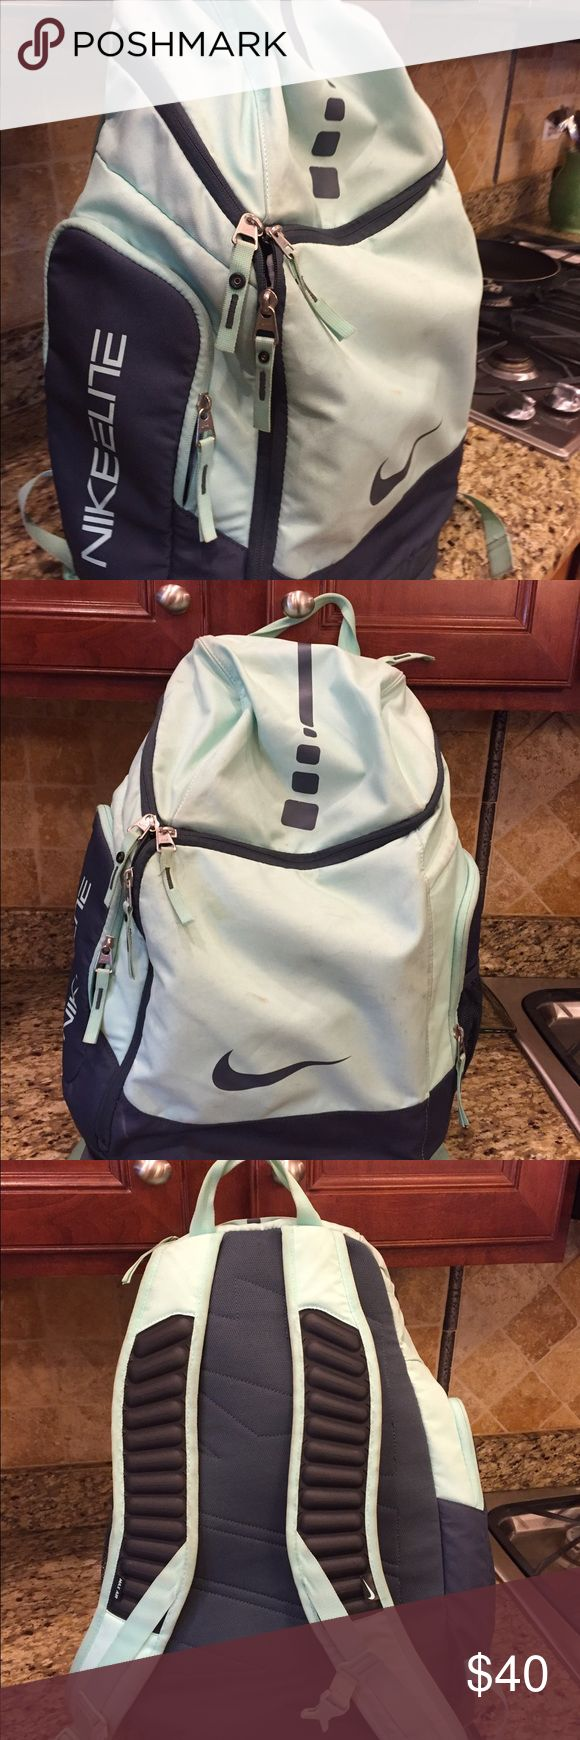 NIKE ELITE backpack Light blue and gray large Nike Elite backpack lightly used. Nike Bags Backpacks